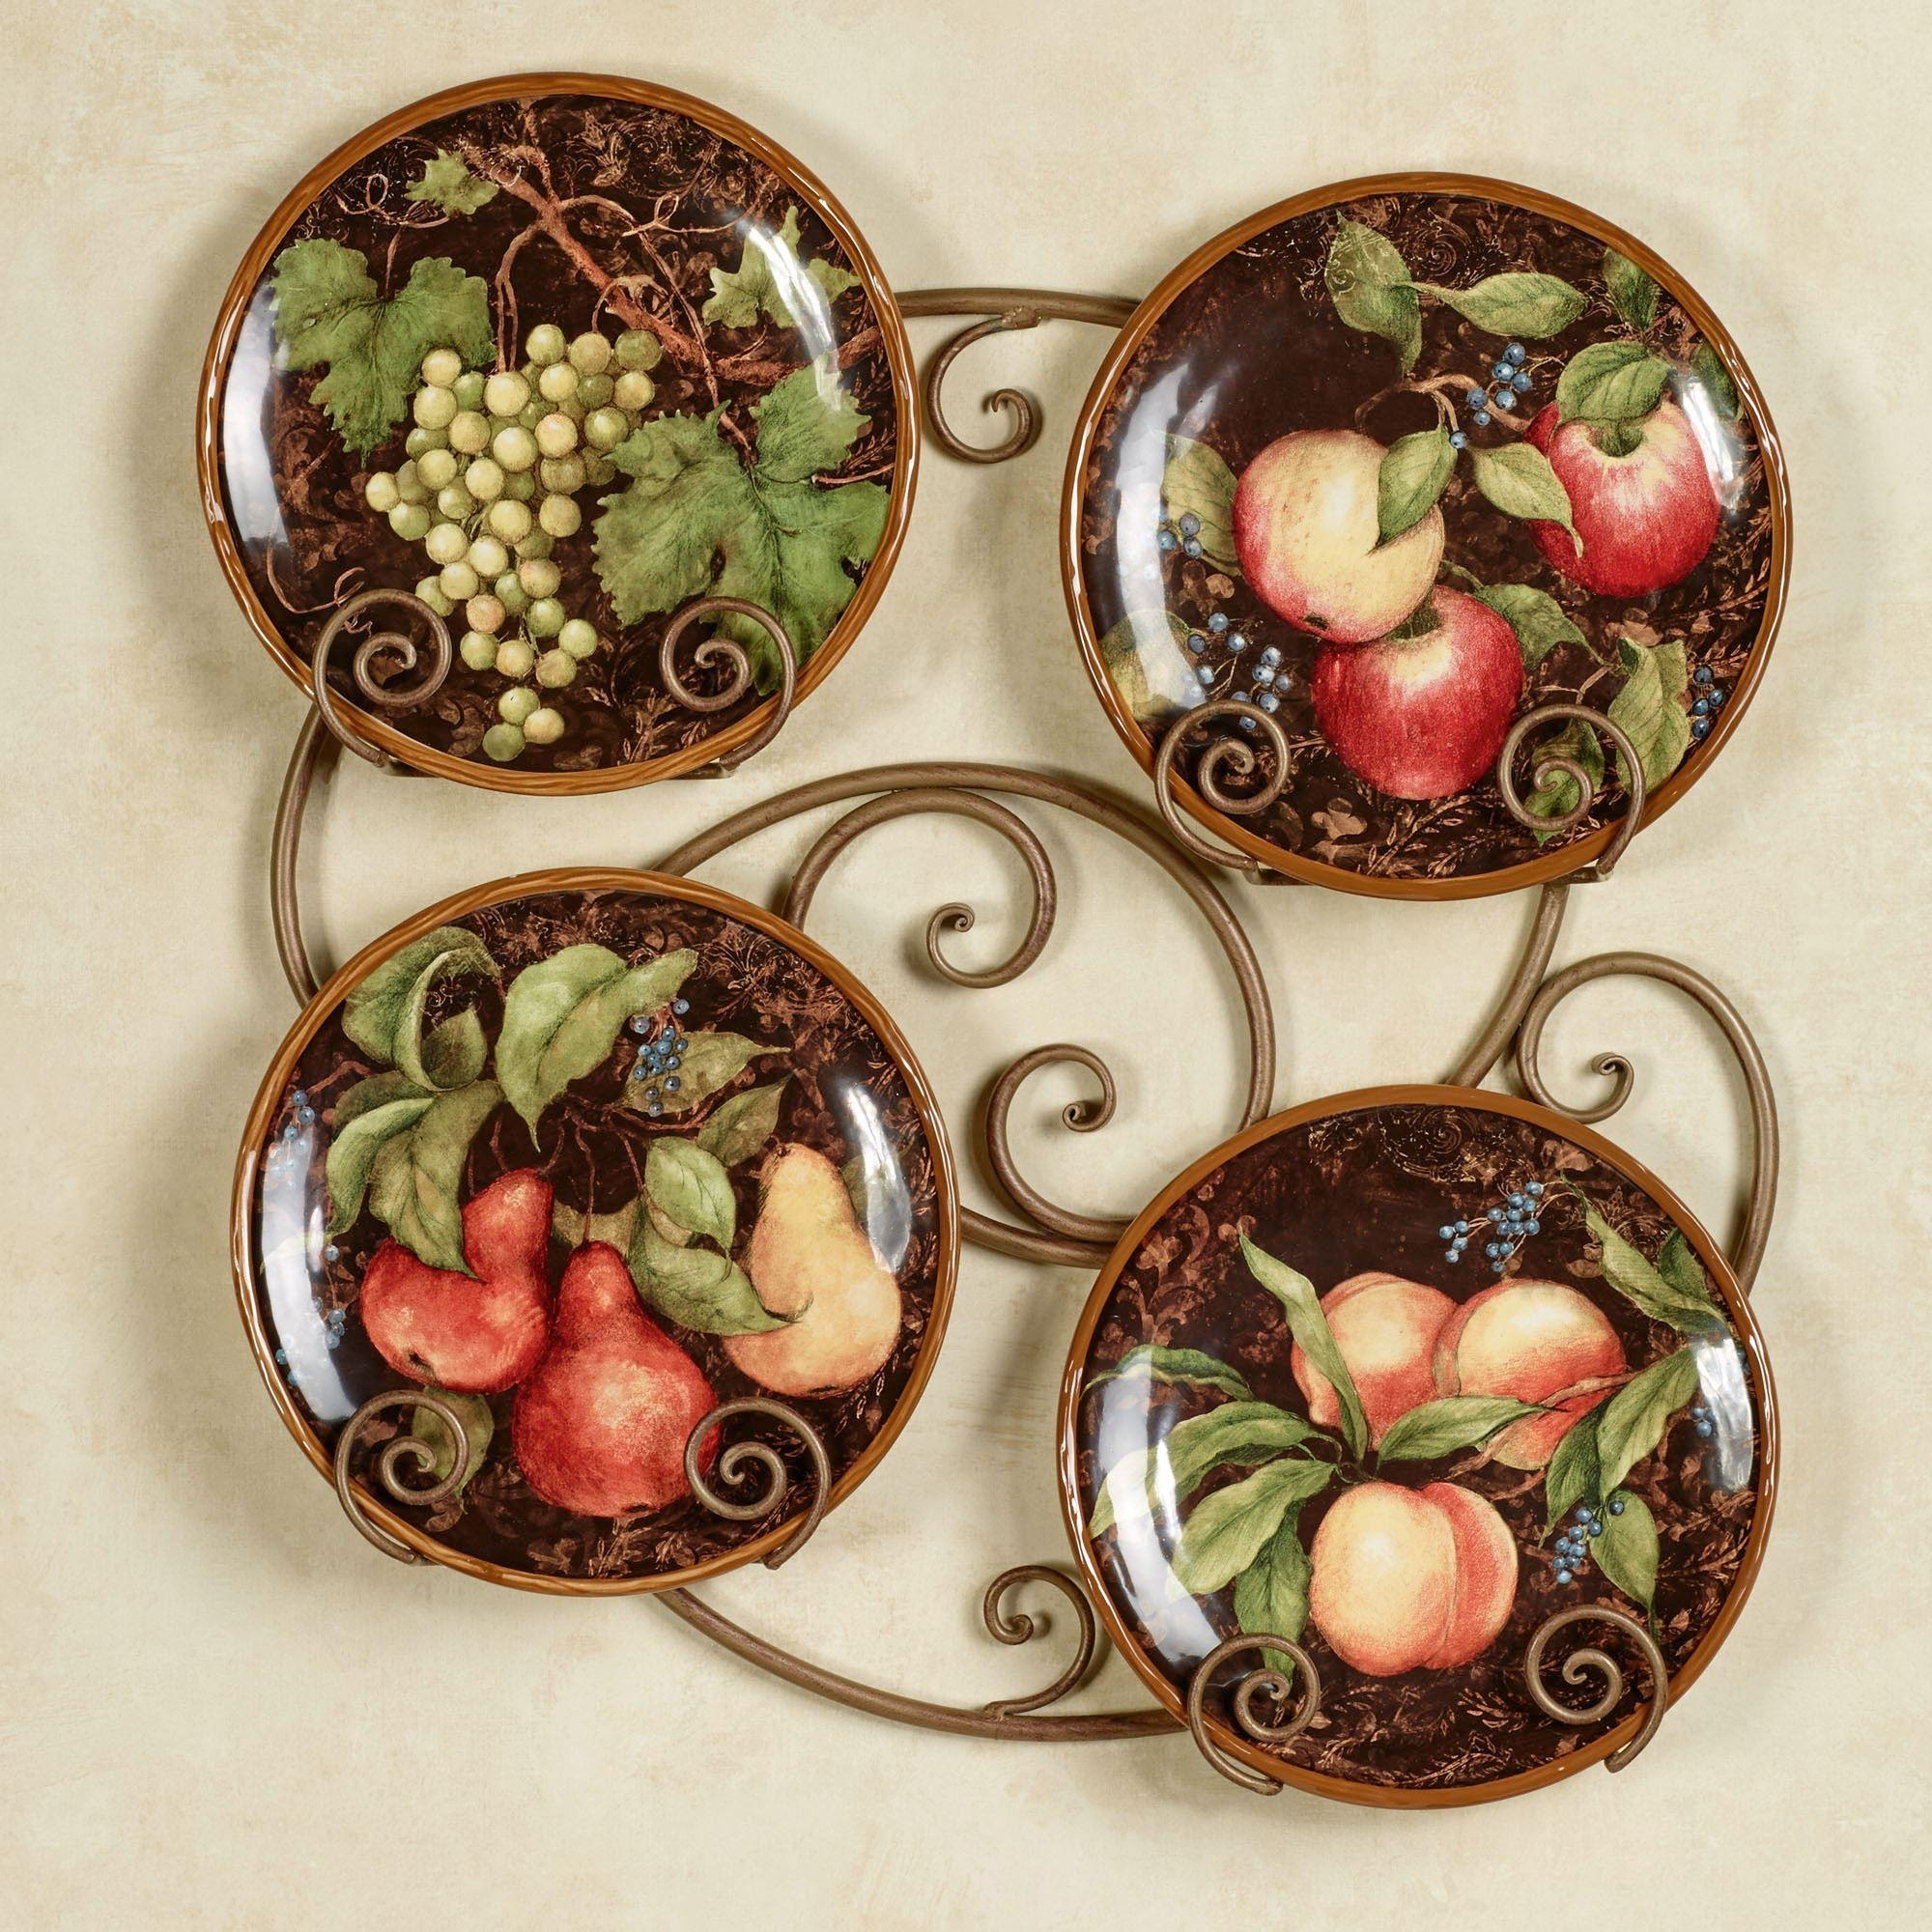 Tuscan And Italian Home Decor | Touch Of Class Regarding Italian Plates Wall Art Sets (View 6 of 20)